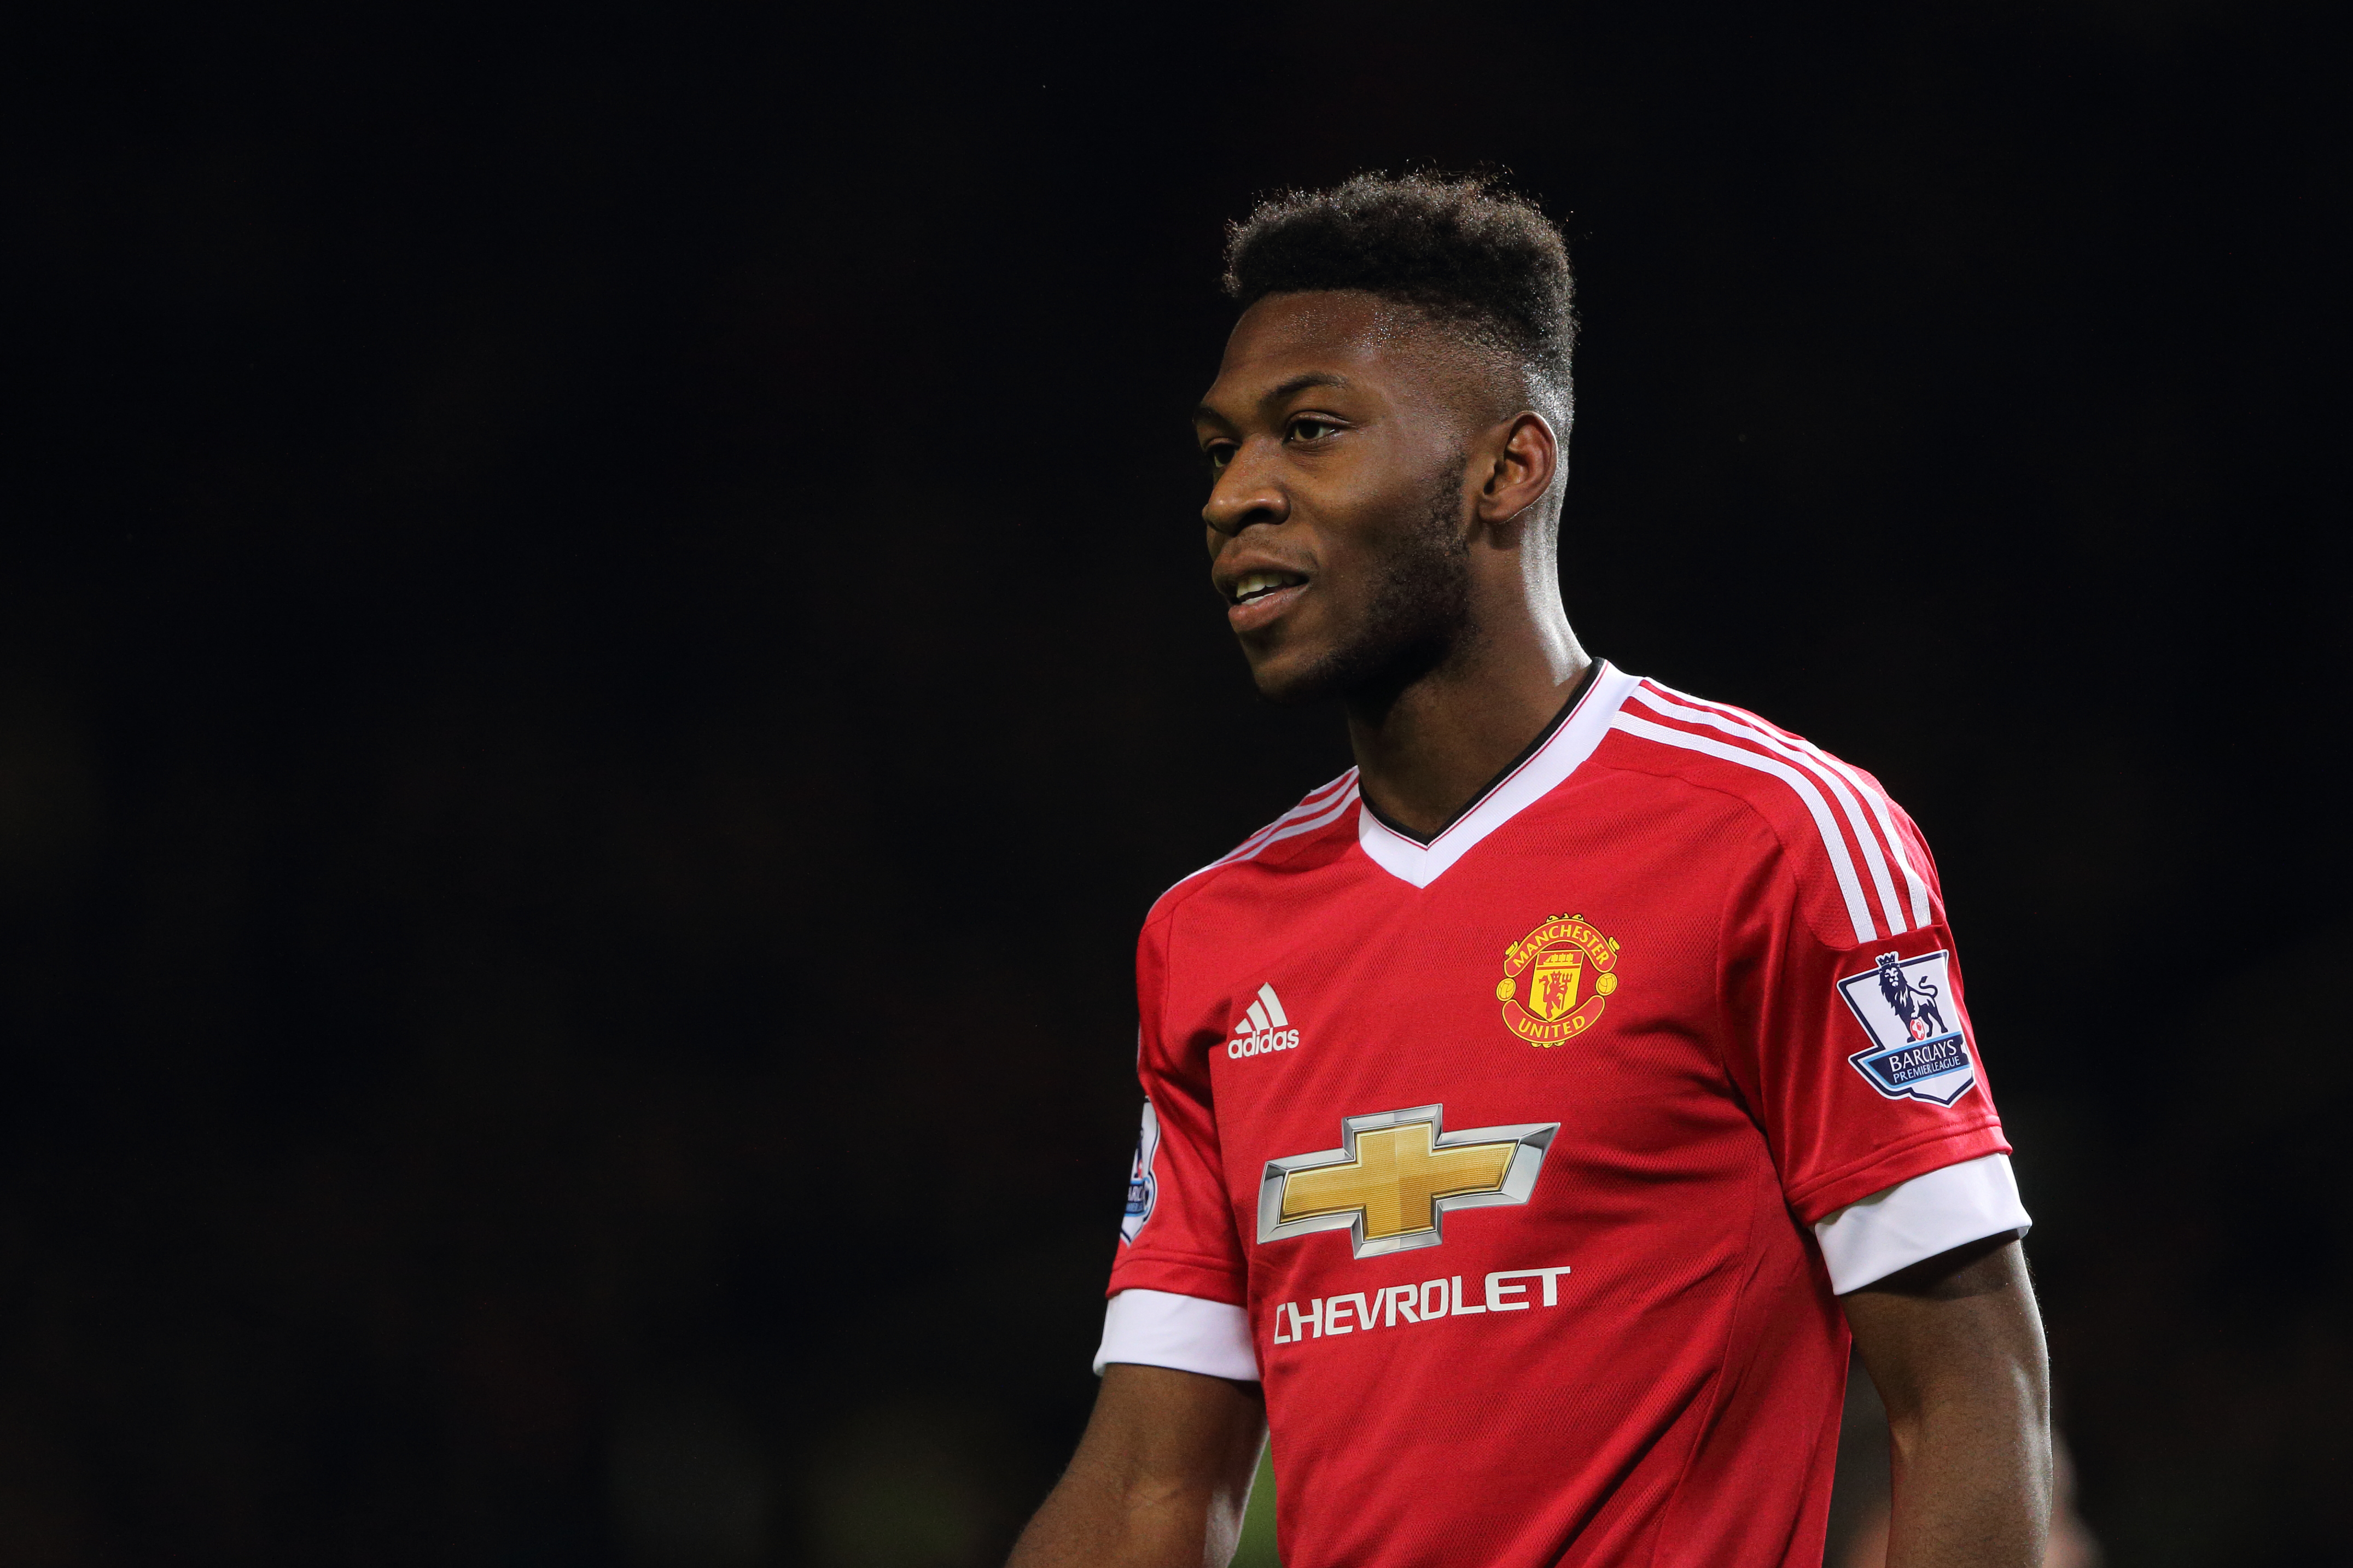 Manchester United vs West Ham: Key battles on the pitch